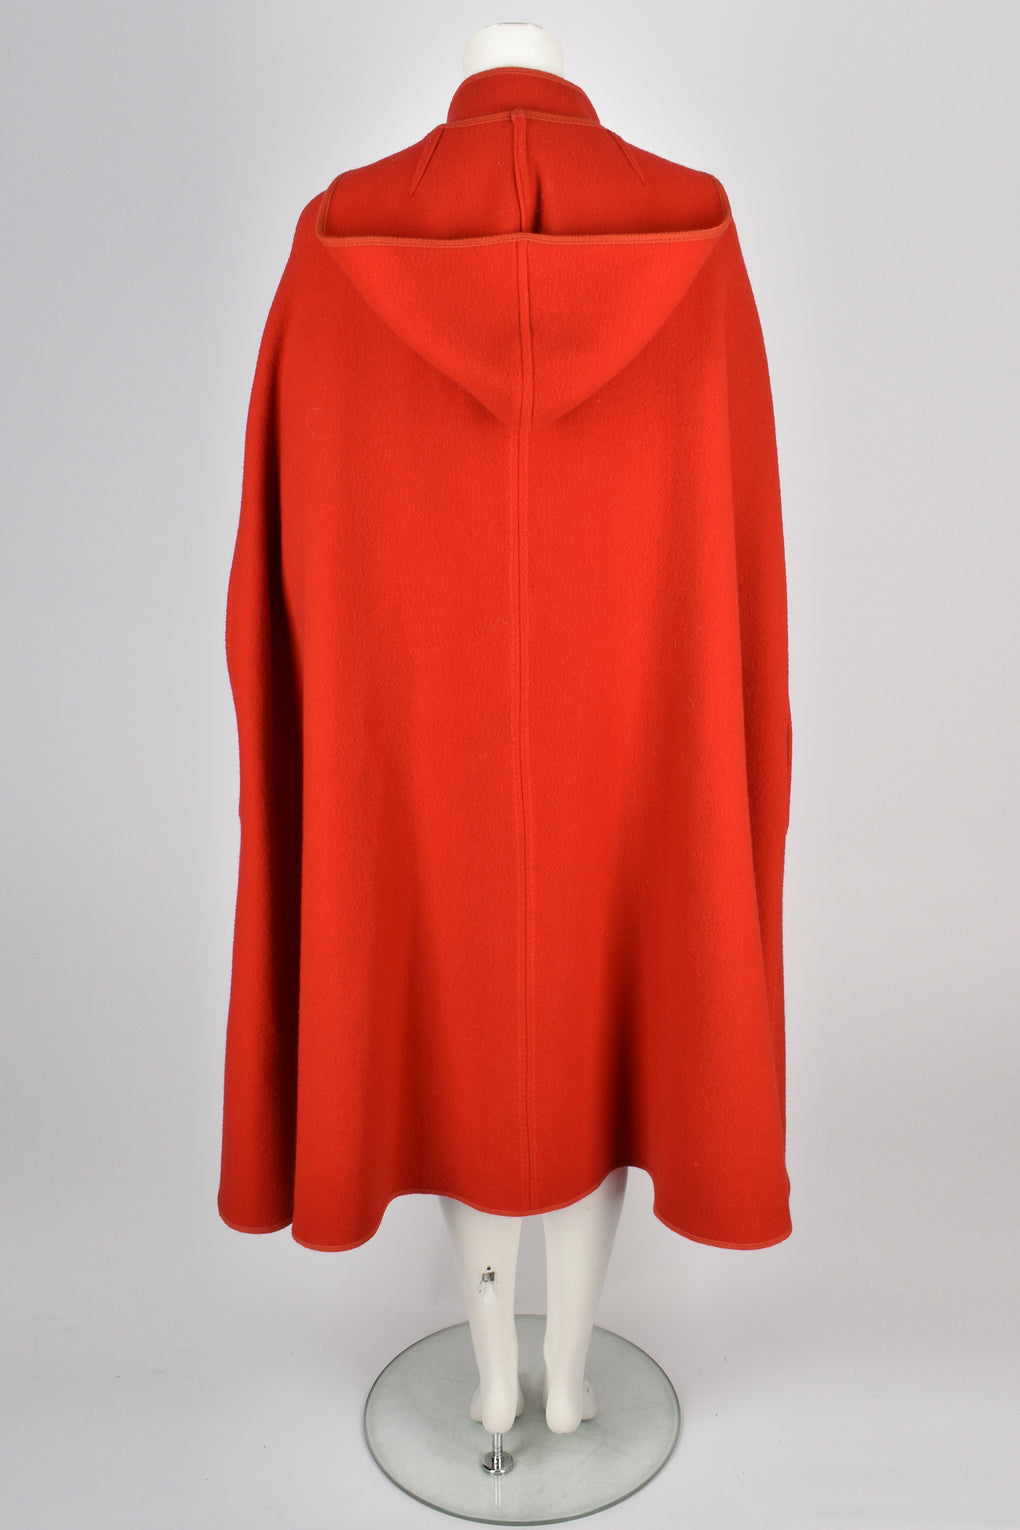 VINTAGE 70s red hooded cape S-M